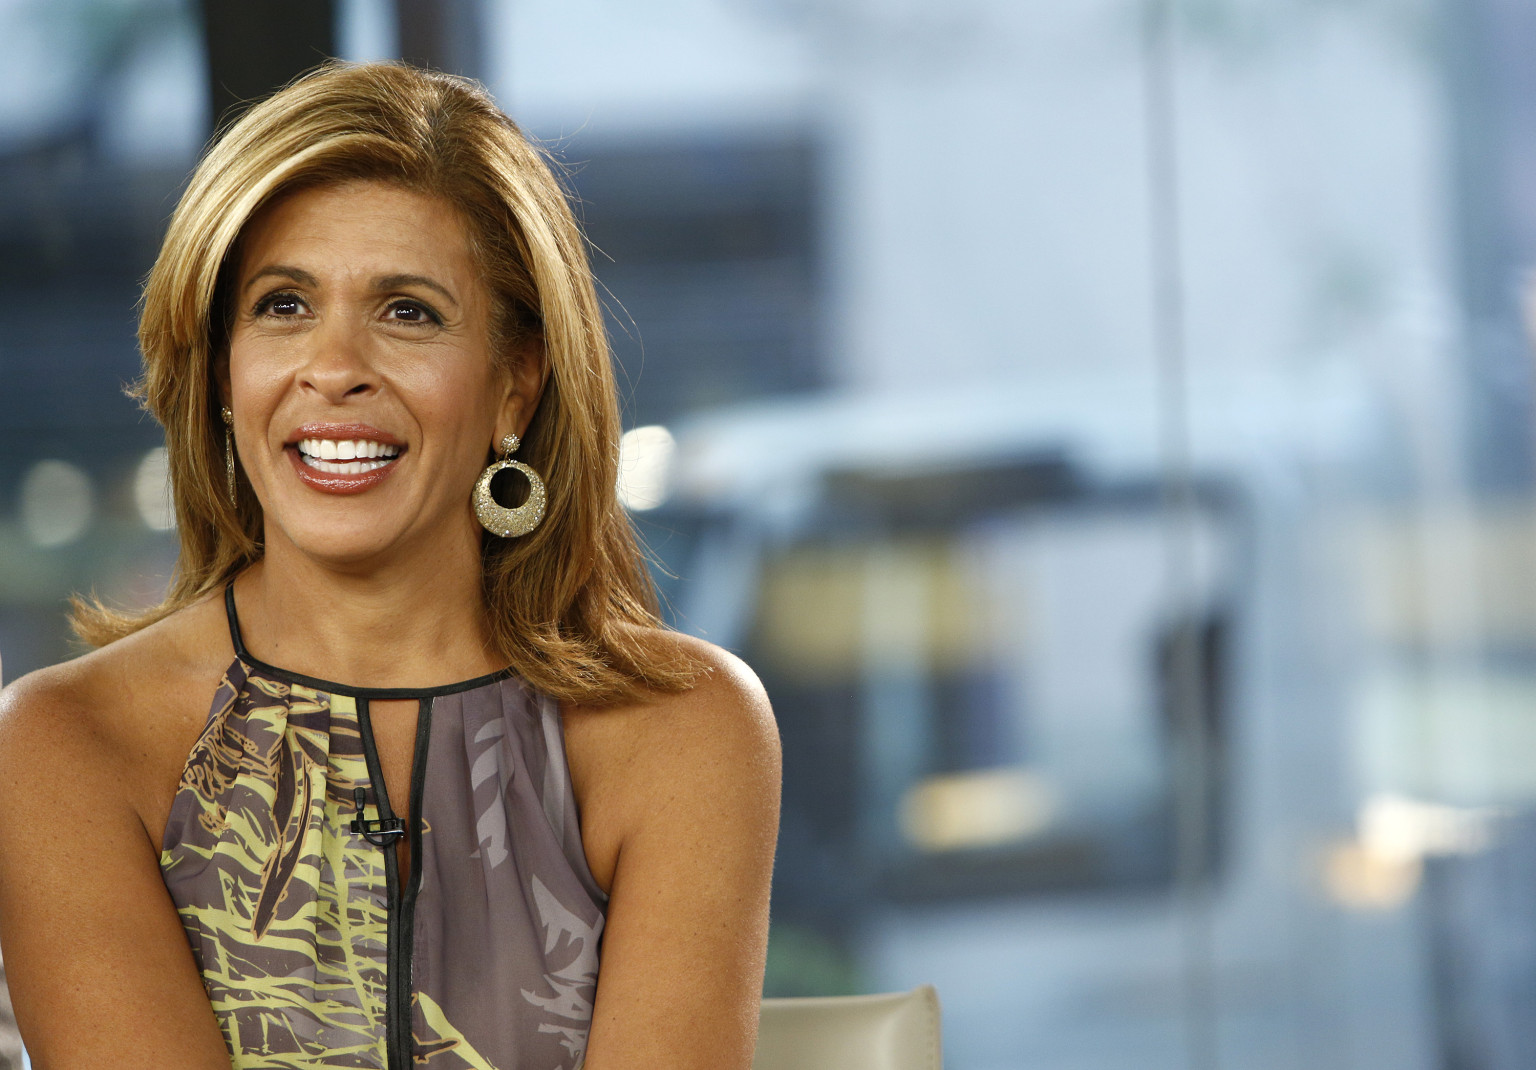 hoda kotb salaryhoda kotb nationality, hoda kotb quotes, hoda kotb daughter, hoda kotb cancer, hoda kotb husband, hoda kotb, hoda kotb instagram, hoda kotb book, hoda kotb and kathie lee, hoda kotb lip sync battle, hoda kotb salary 2014, hoda kotb uptown funk, hoda kotb boyfriend, hoda kotb net worth, hoda kotb salary, hoda kotb twitter, hoda kotb boyfriend boots 2014, hoda kotb religion, hoda kotb height, hoda kotb breast cancer